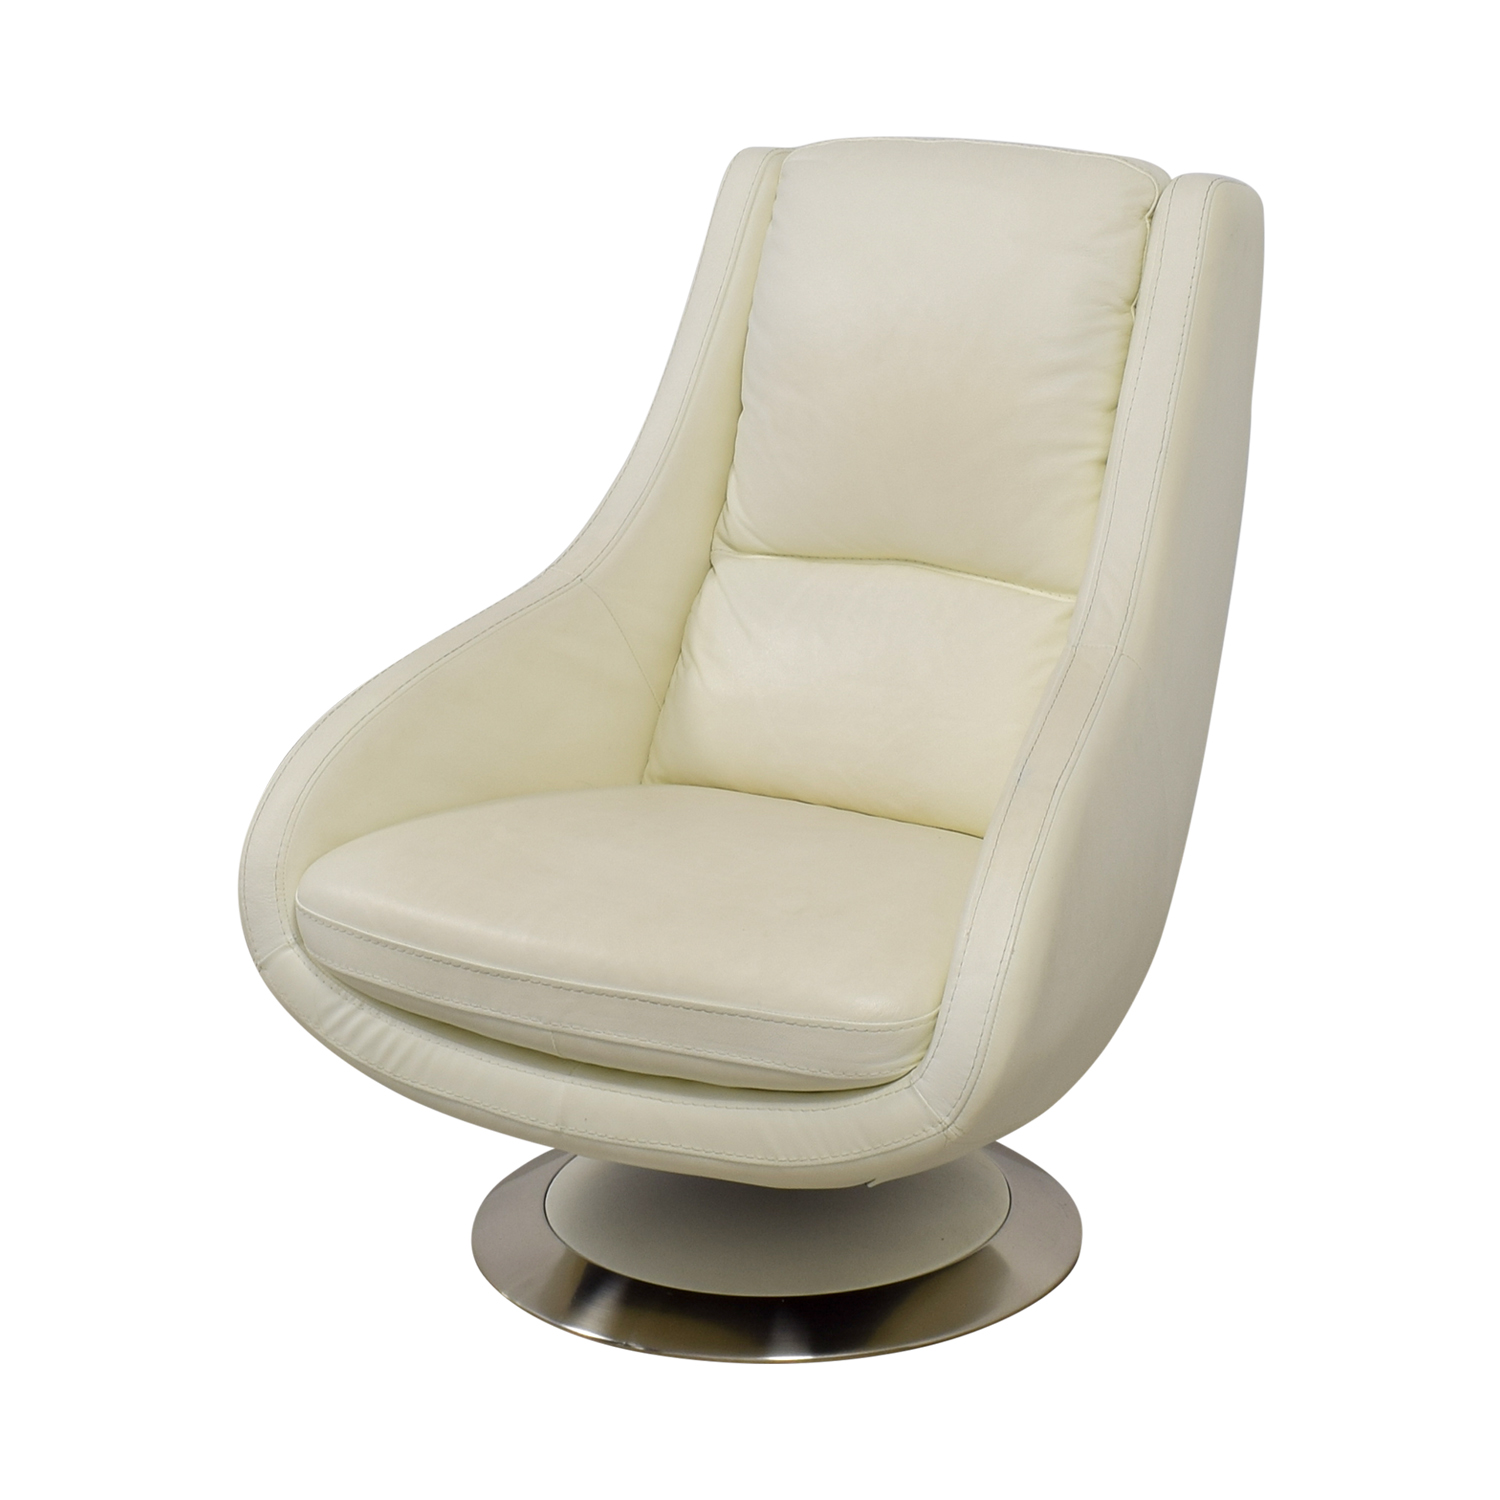 Design Within Reach Design Within Reach White Leather Swivel Chair Accent Chairs